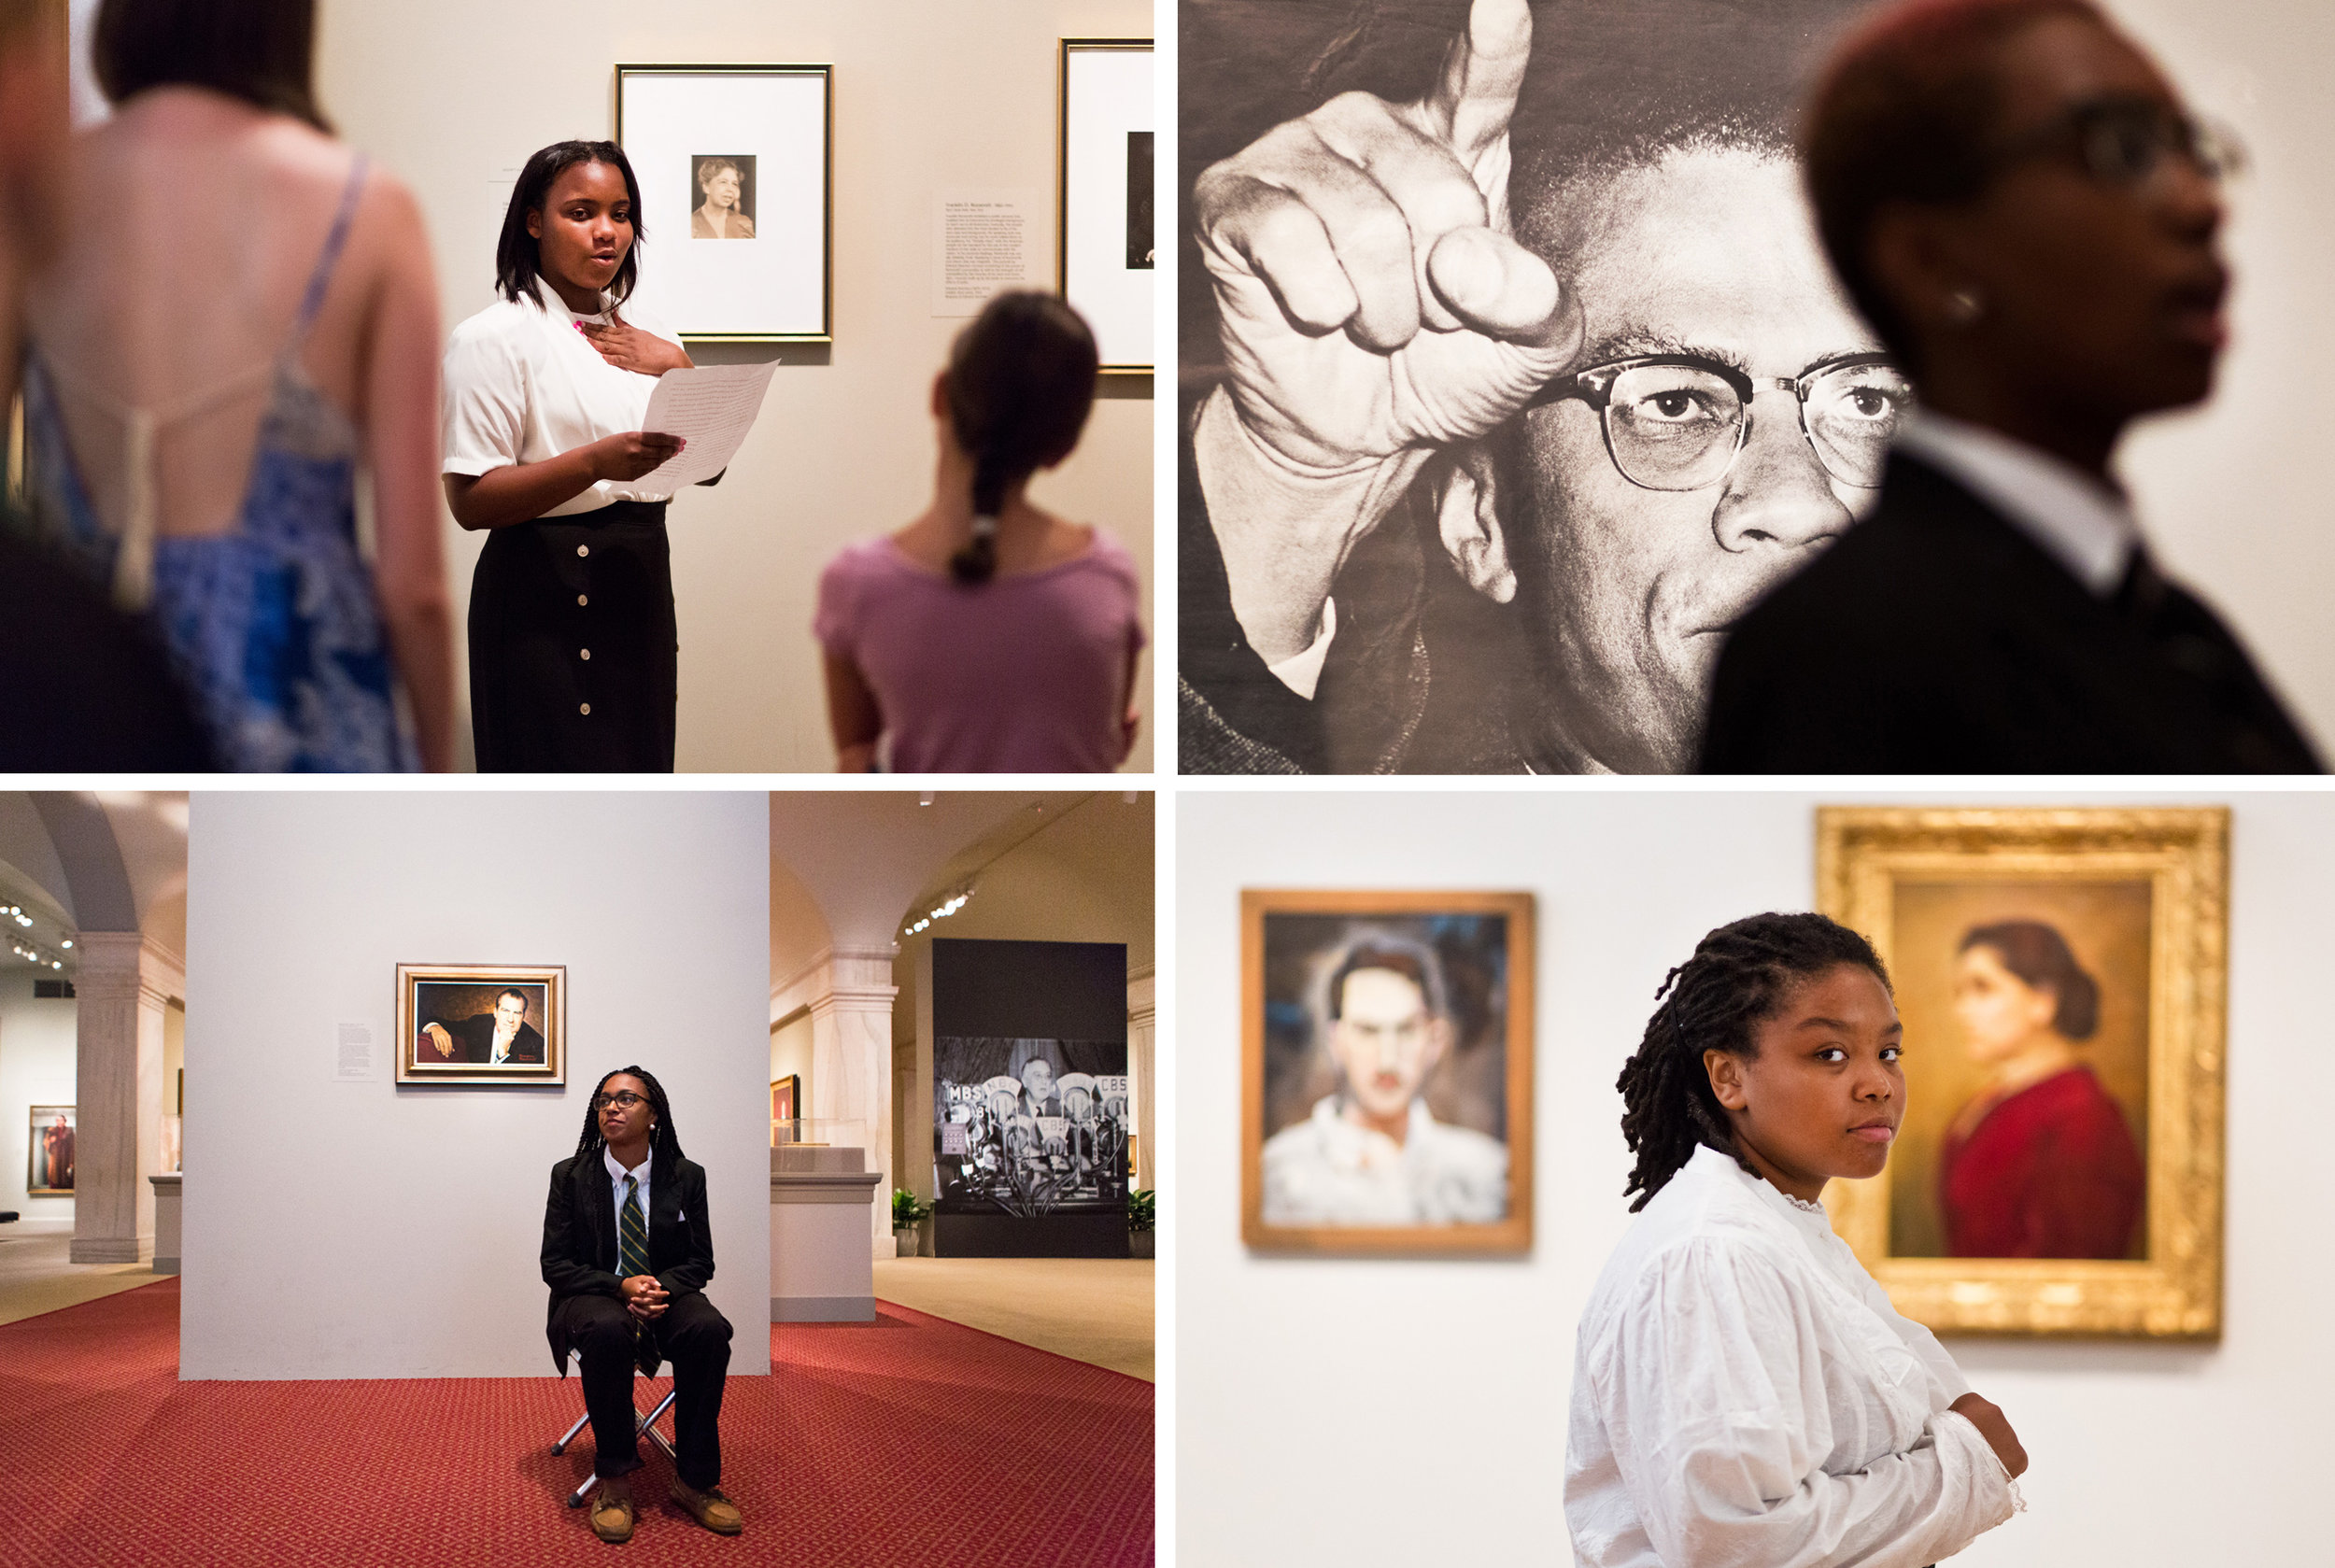 The students perform their monologues in front of the portraits and photographs of their chosen historical figure.